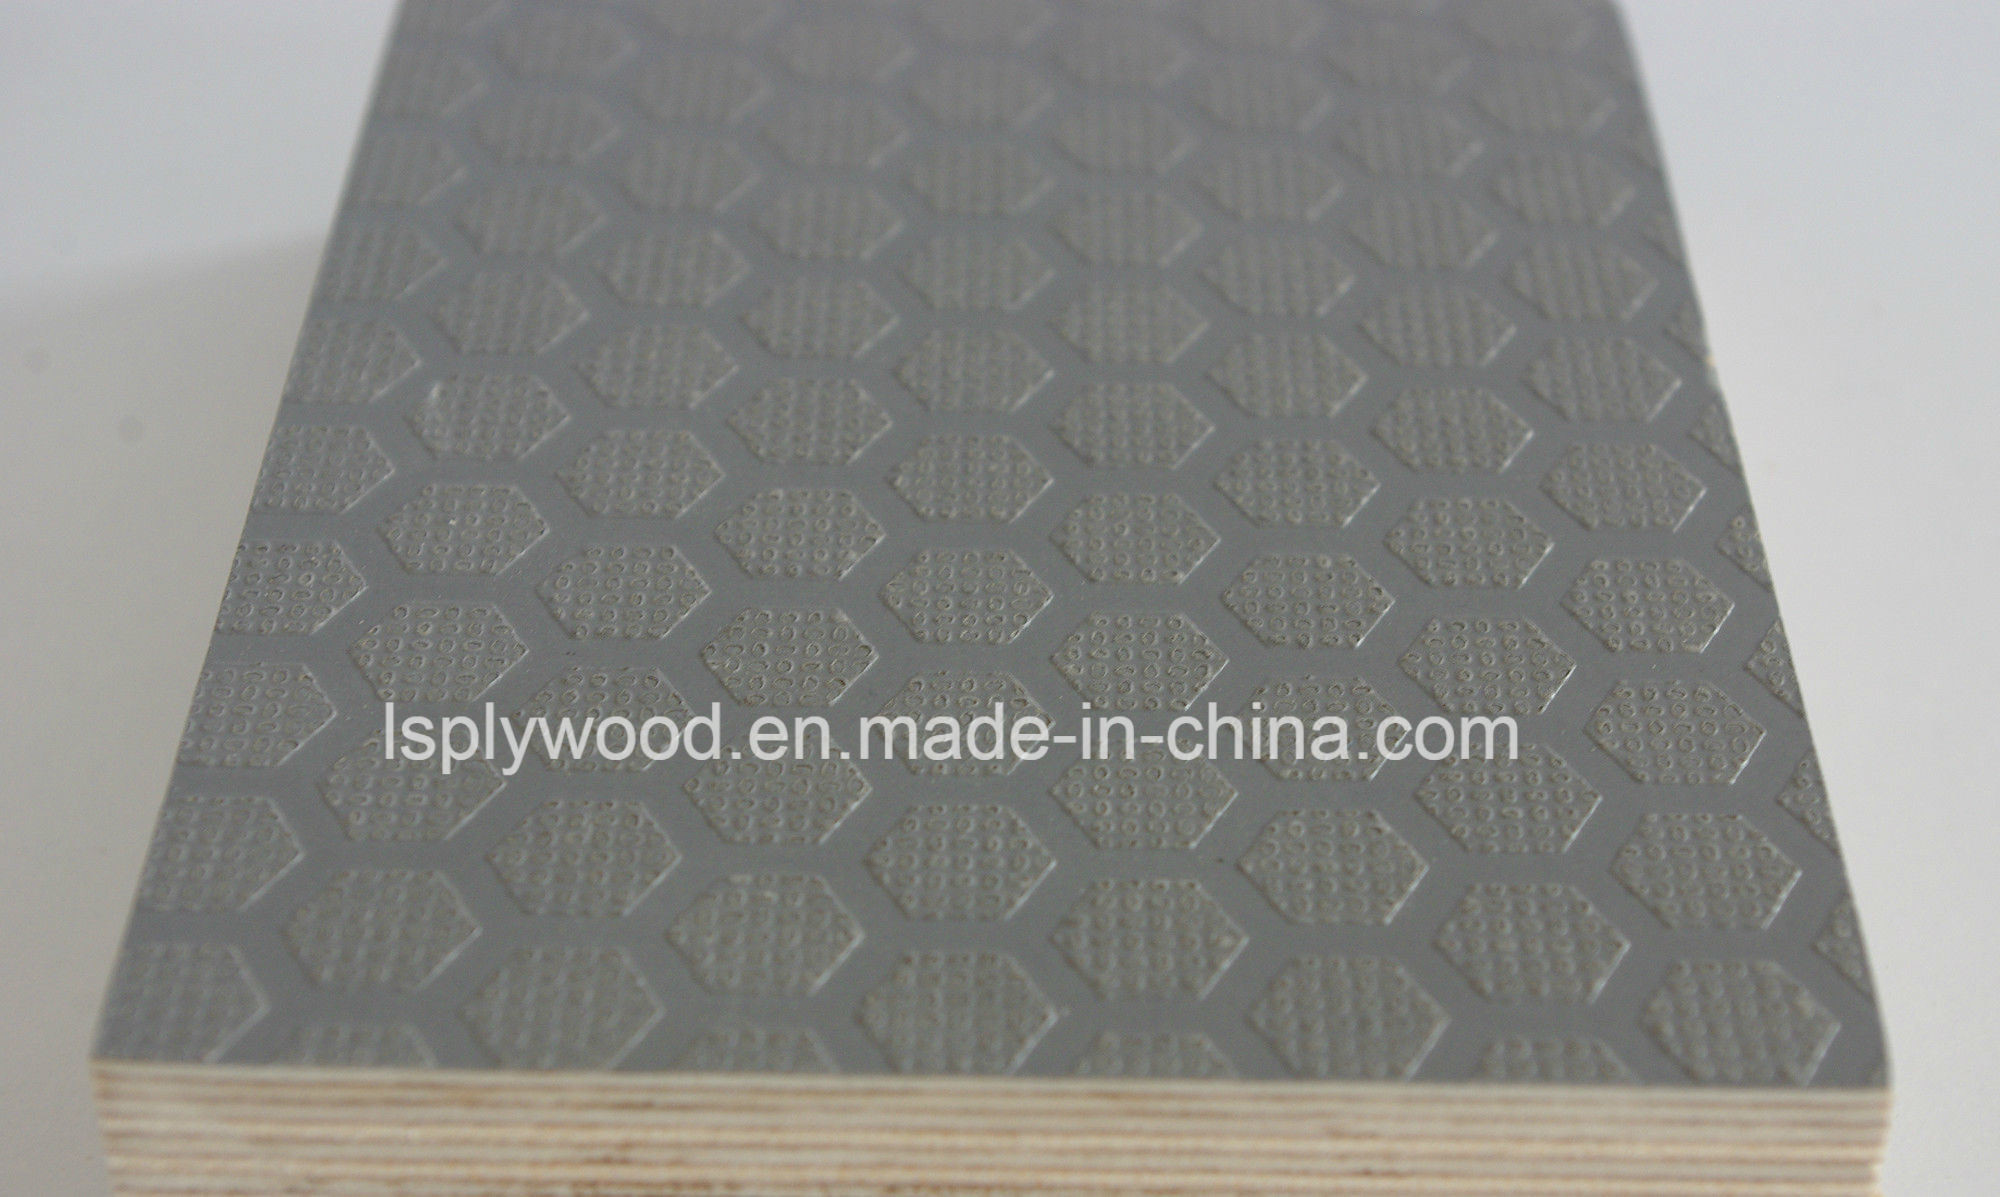 hardwood flooring cost lowes of china hardwood construction film faced plywood lowes photos intended for hardwood construction film faced plywood lowes